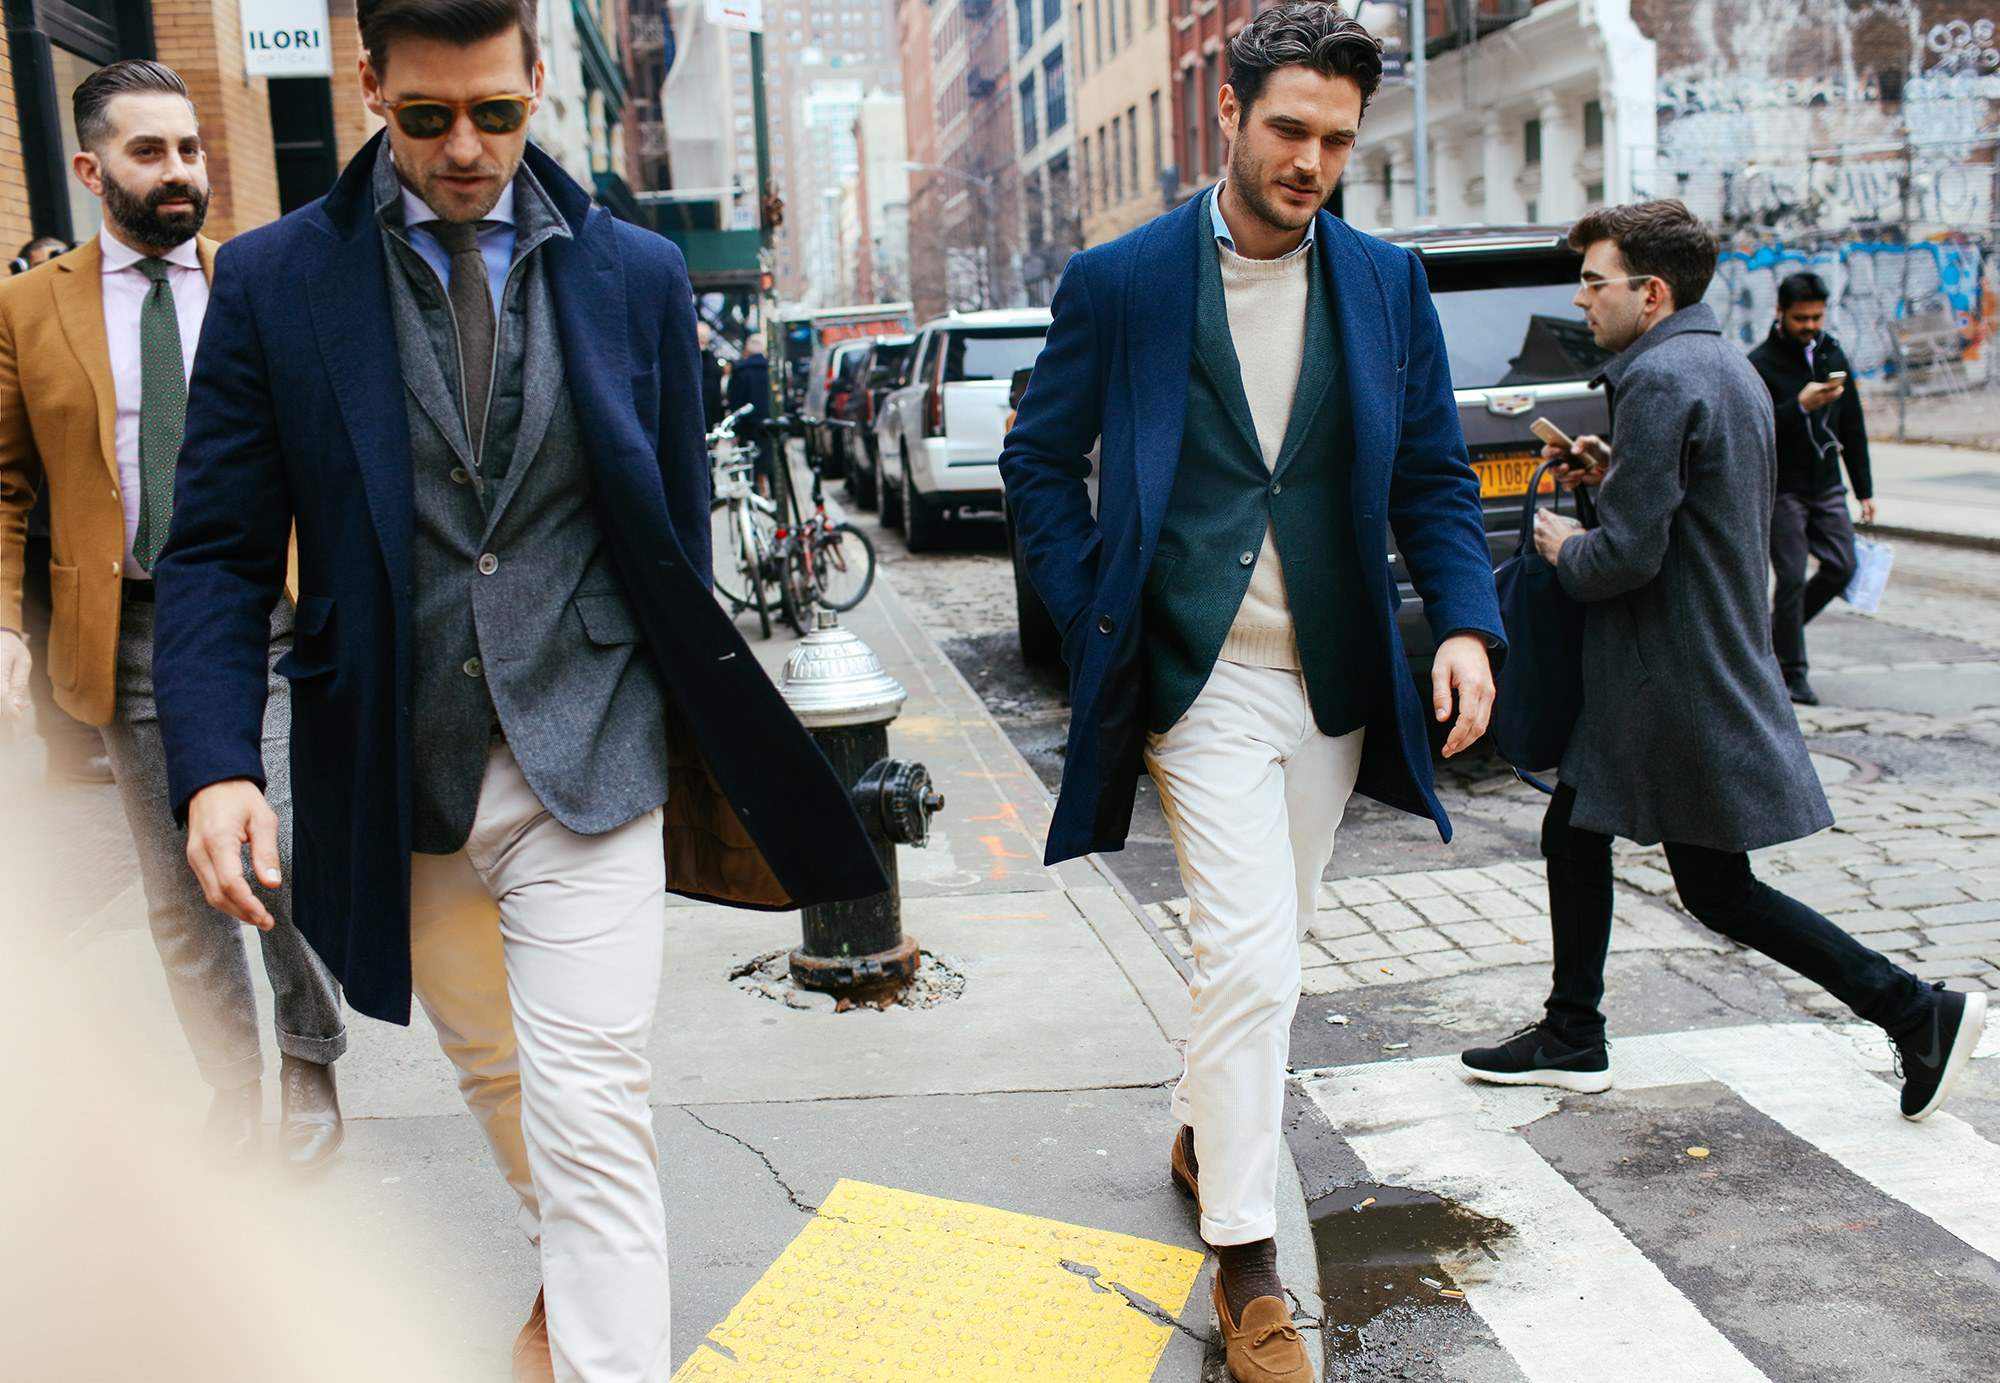 Returns the navy blazer - Use the navy suit jacket as a blazer and simplify into a toned down, weekend look.